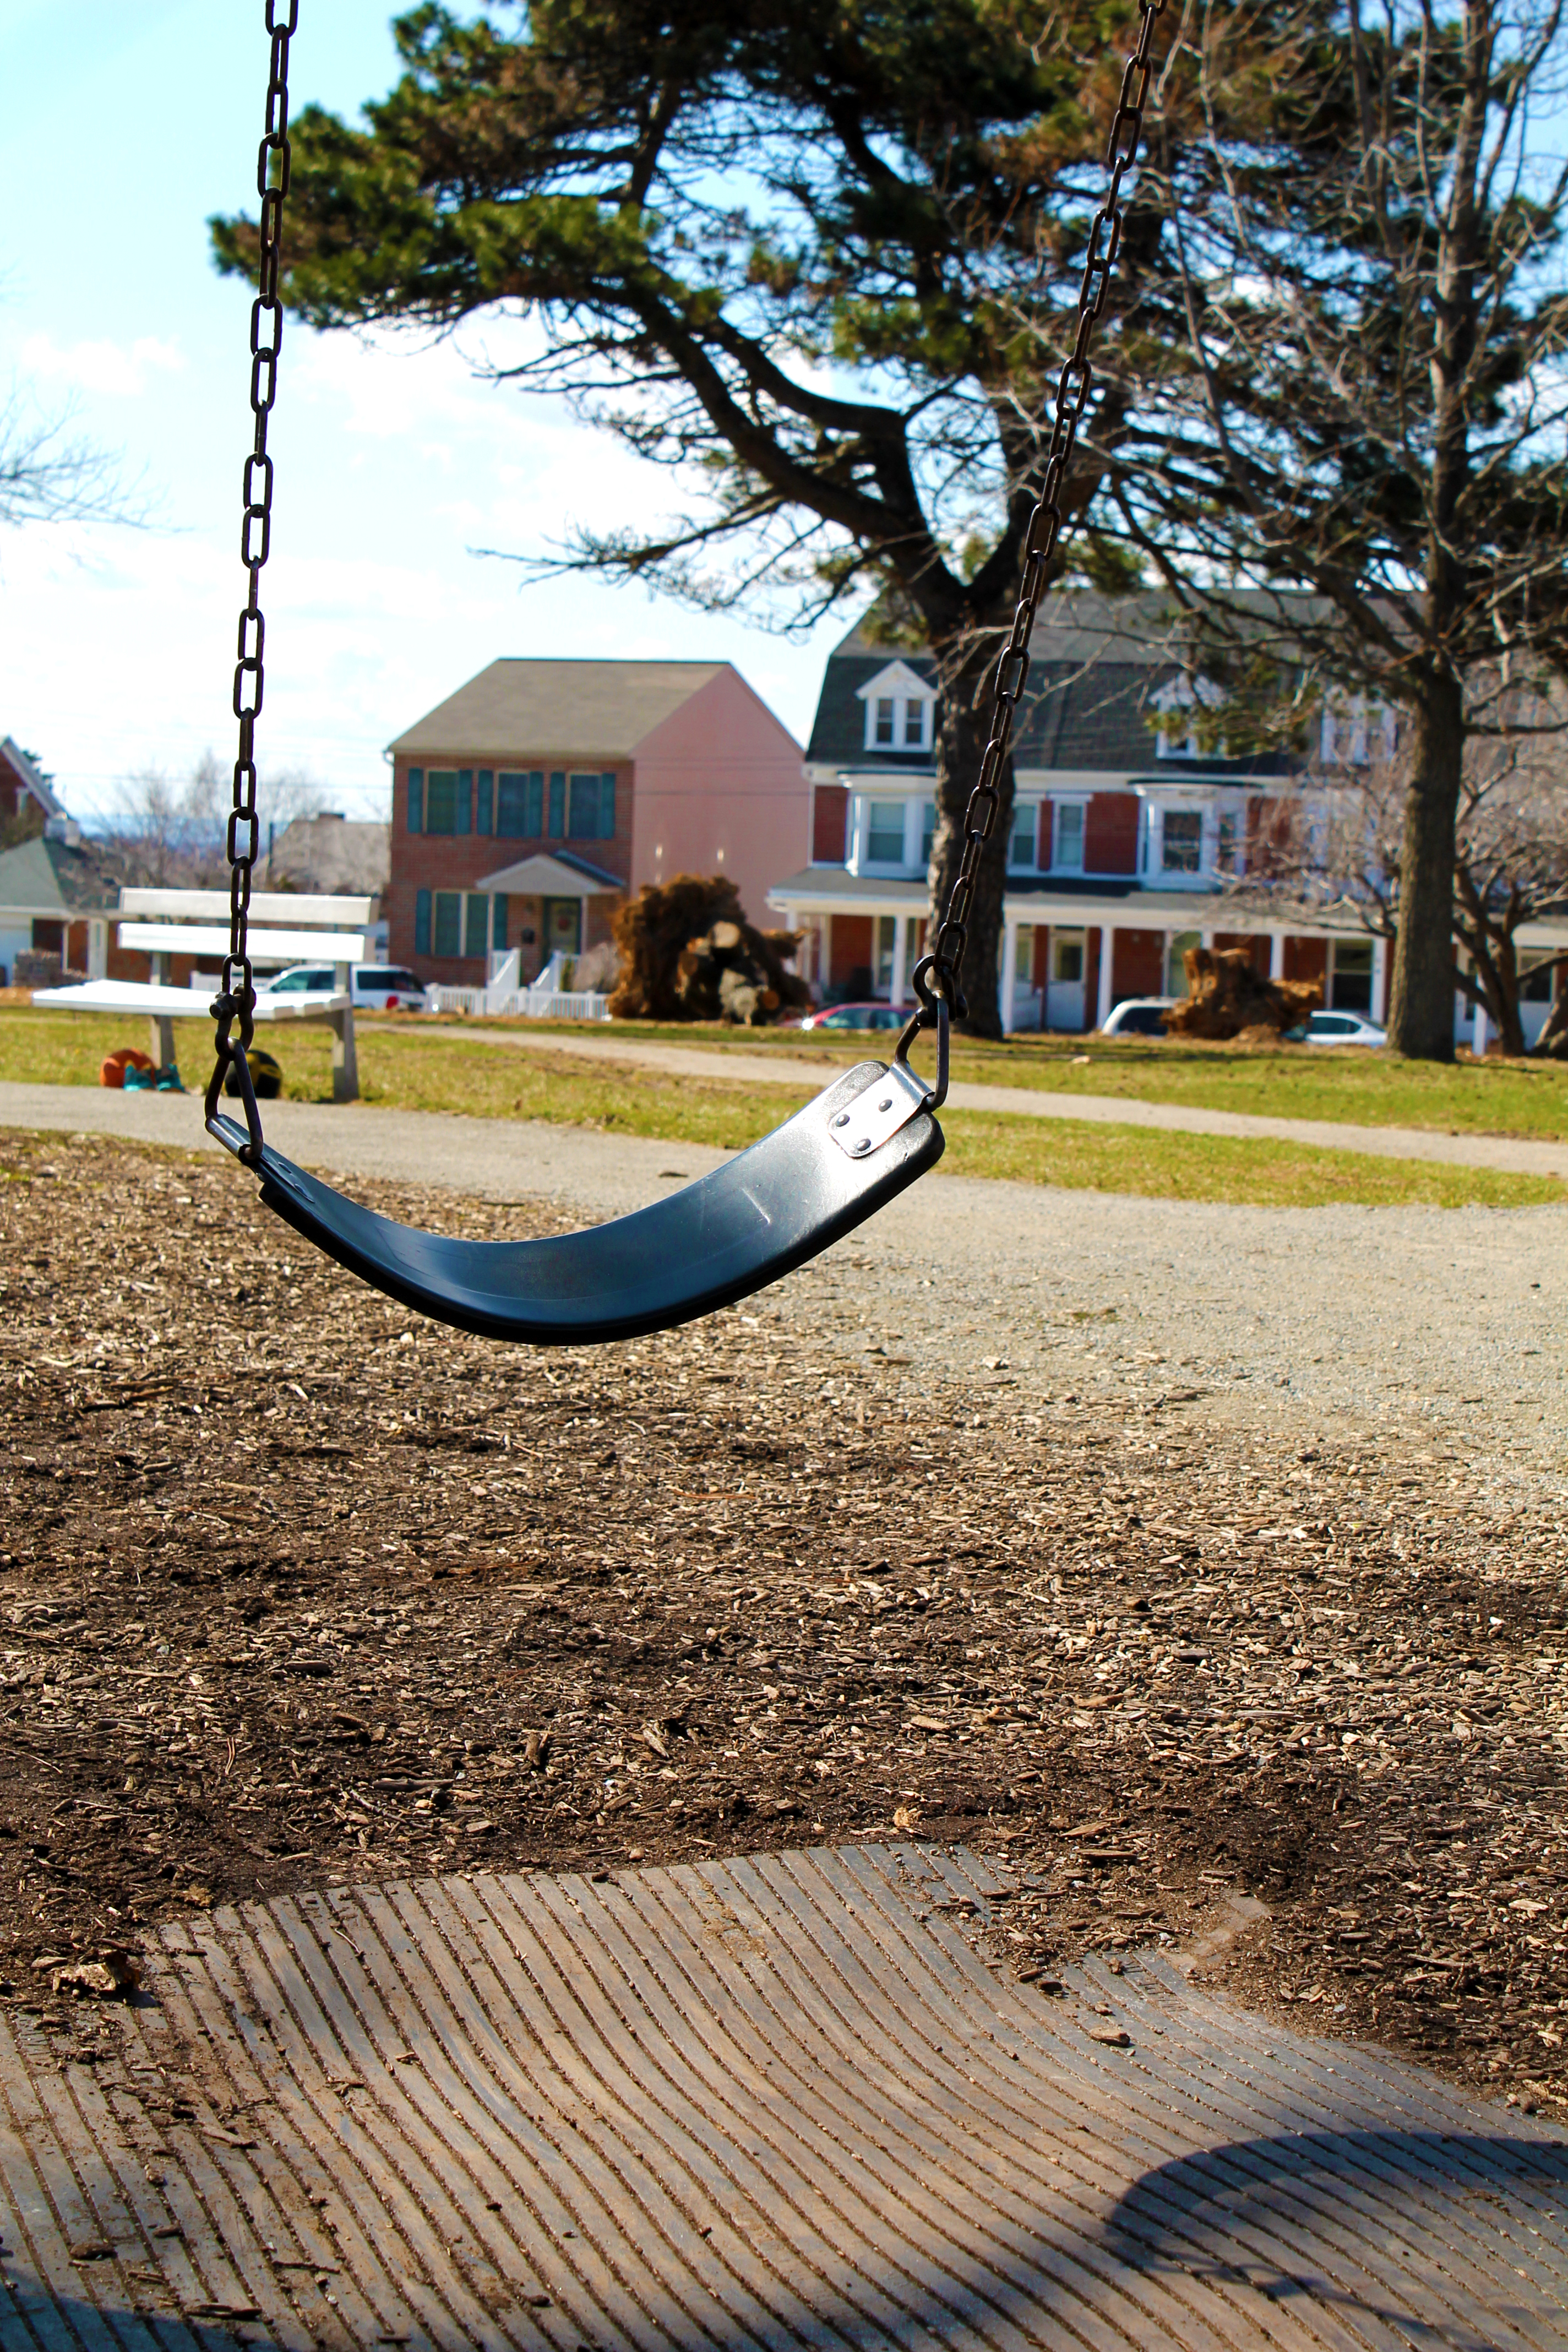 Empty Swing | Work in Progress Wednesday: Photo Editing | Making the Most Blog